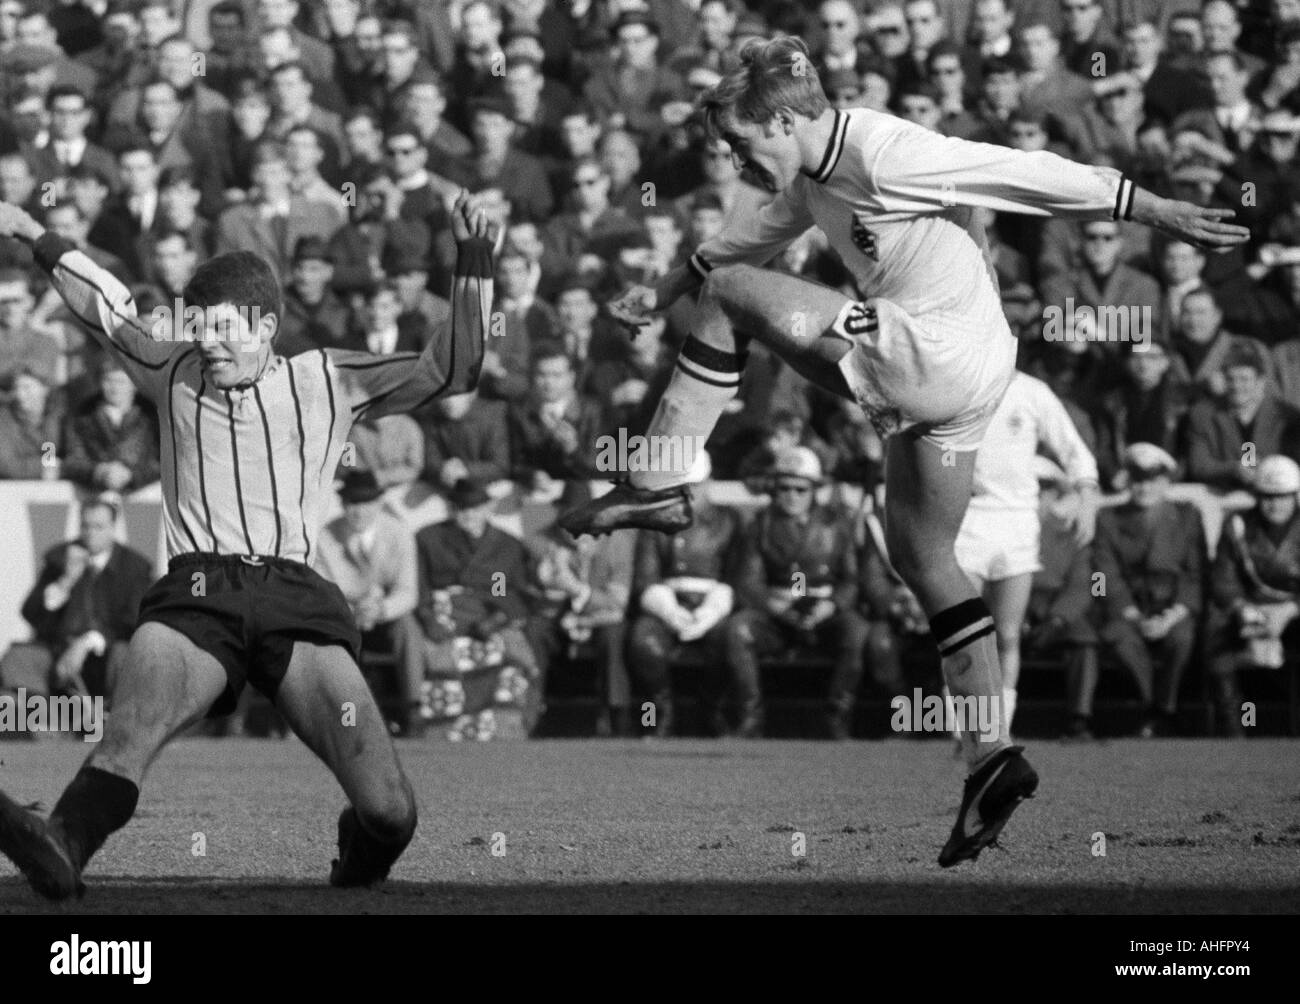 football, Bundesliga, 1967/1968, Borussia Moenchengladbach versus Alemannia Aix-La-Chapelle 3:0, Boekelberg Stadium, scene of the match, shot on goal by Guenter Netzer (MG), left Peter Schoengen (Aachen) - Stock Image